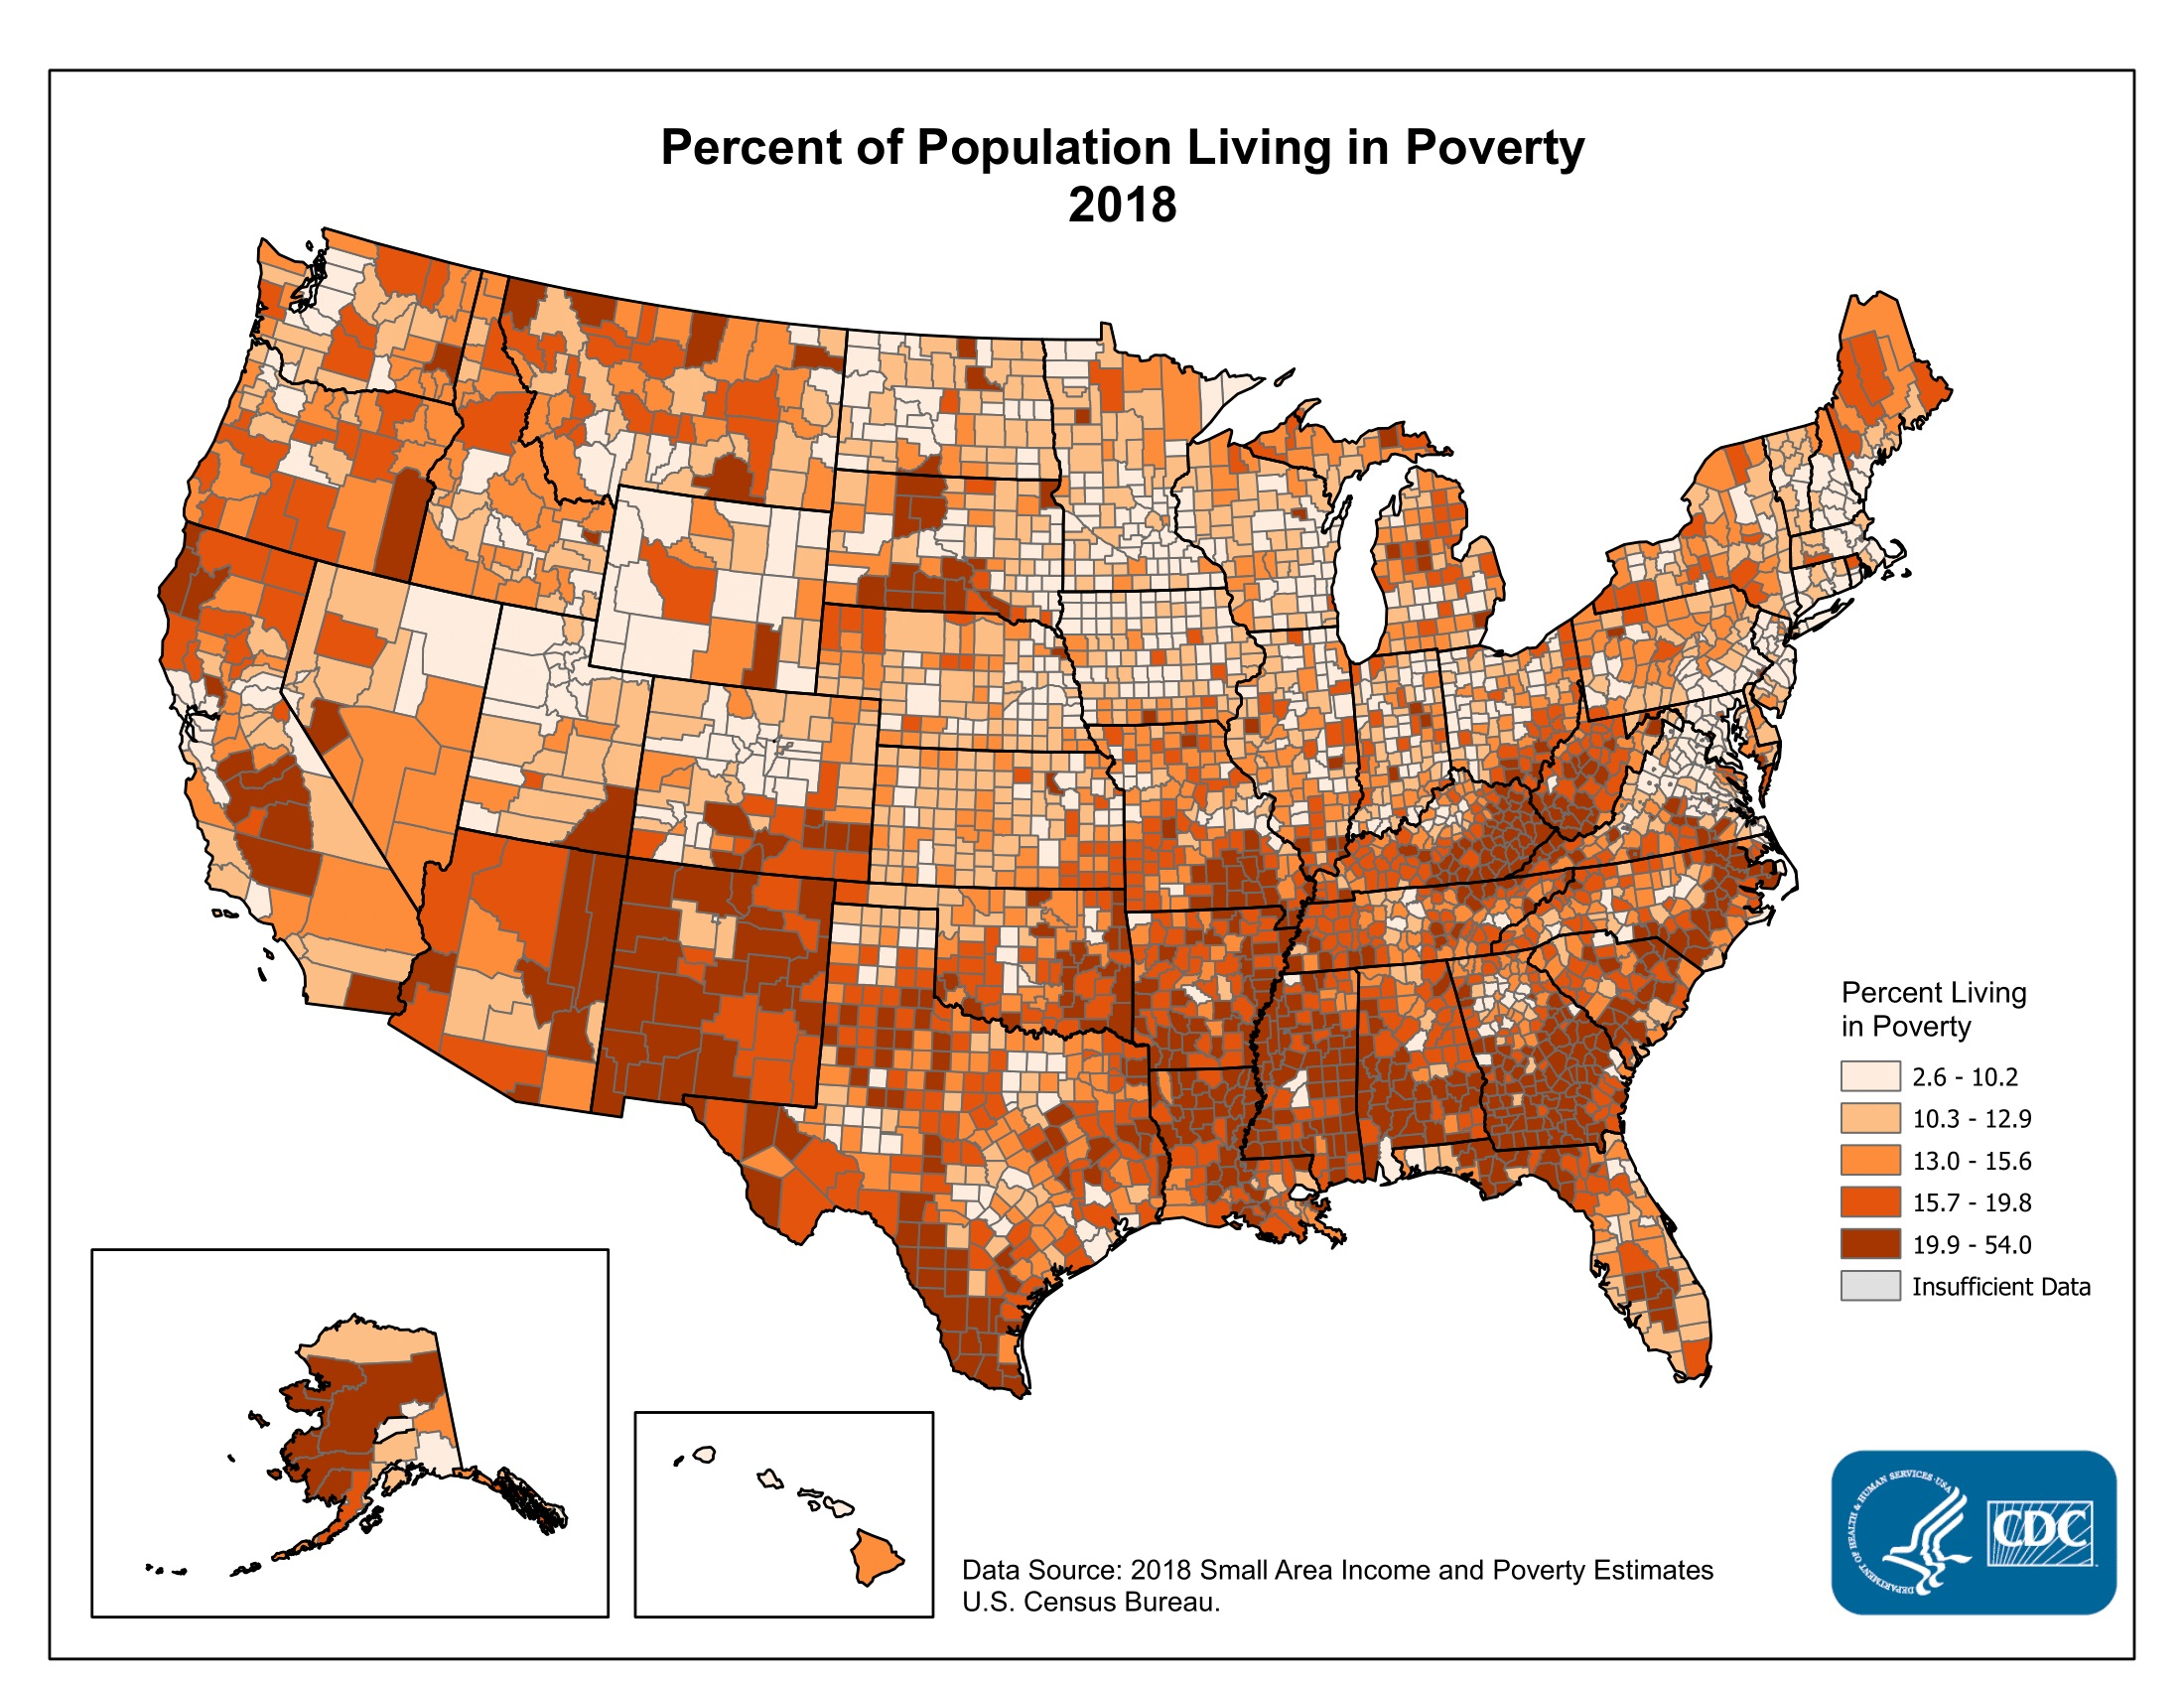 Counties with the highest percentages were located primarily in the South Atlantic, Lower Mississippi River, Appalachian, and Southwestern Regions. The frequency distribution indicates that for the majority of counties, the percentage of the population living in poverty was between 5% and 25%.